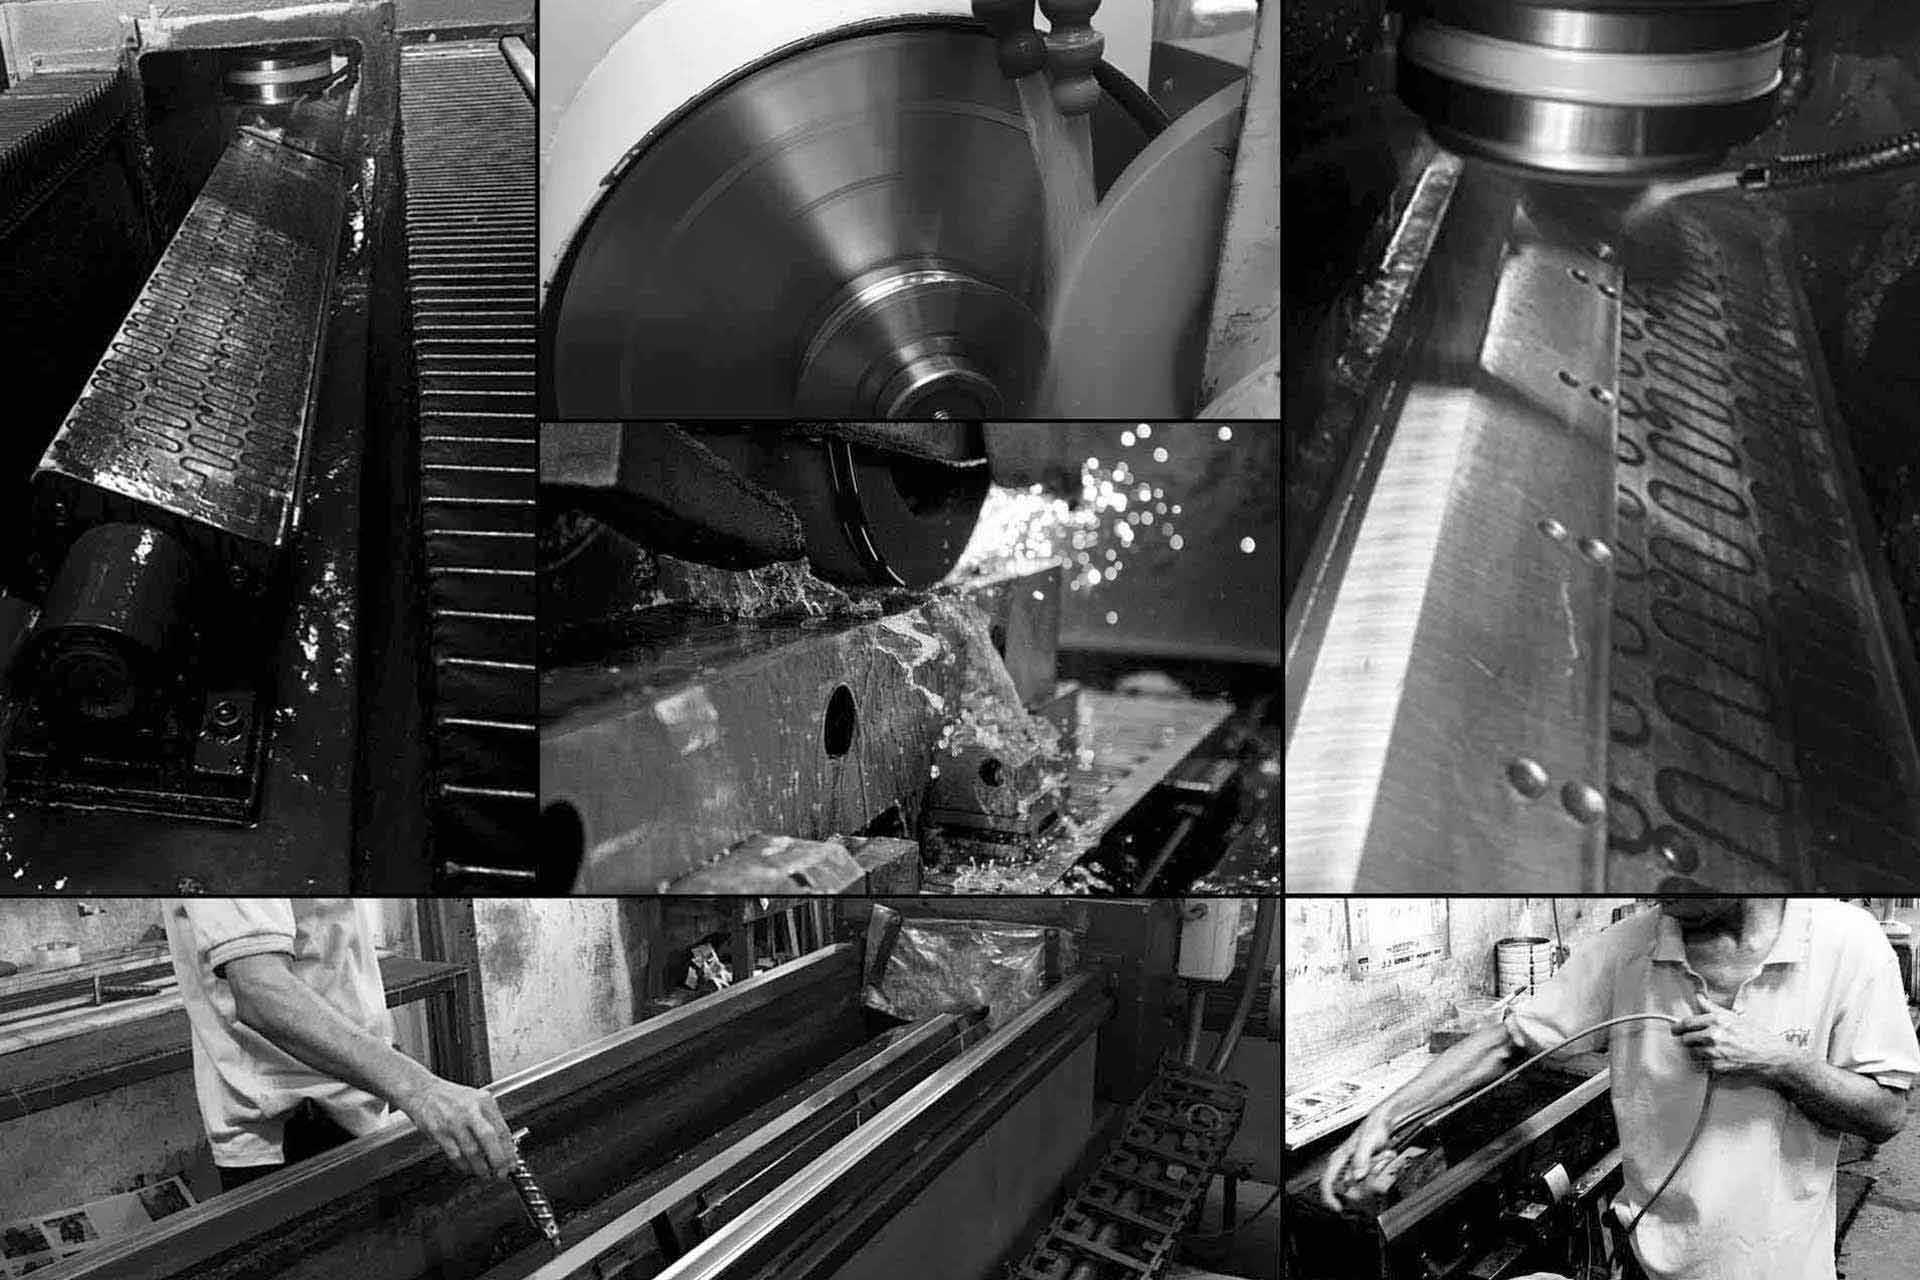 Grinding Knives Process